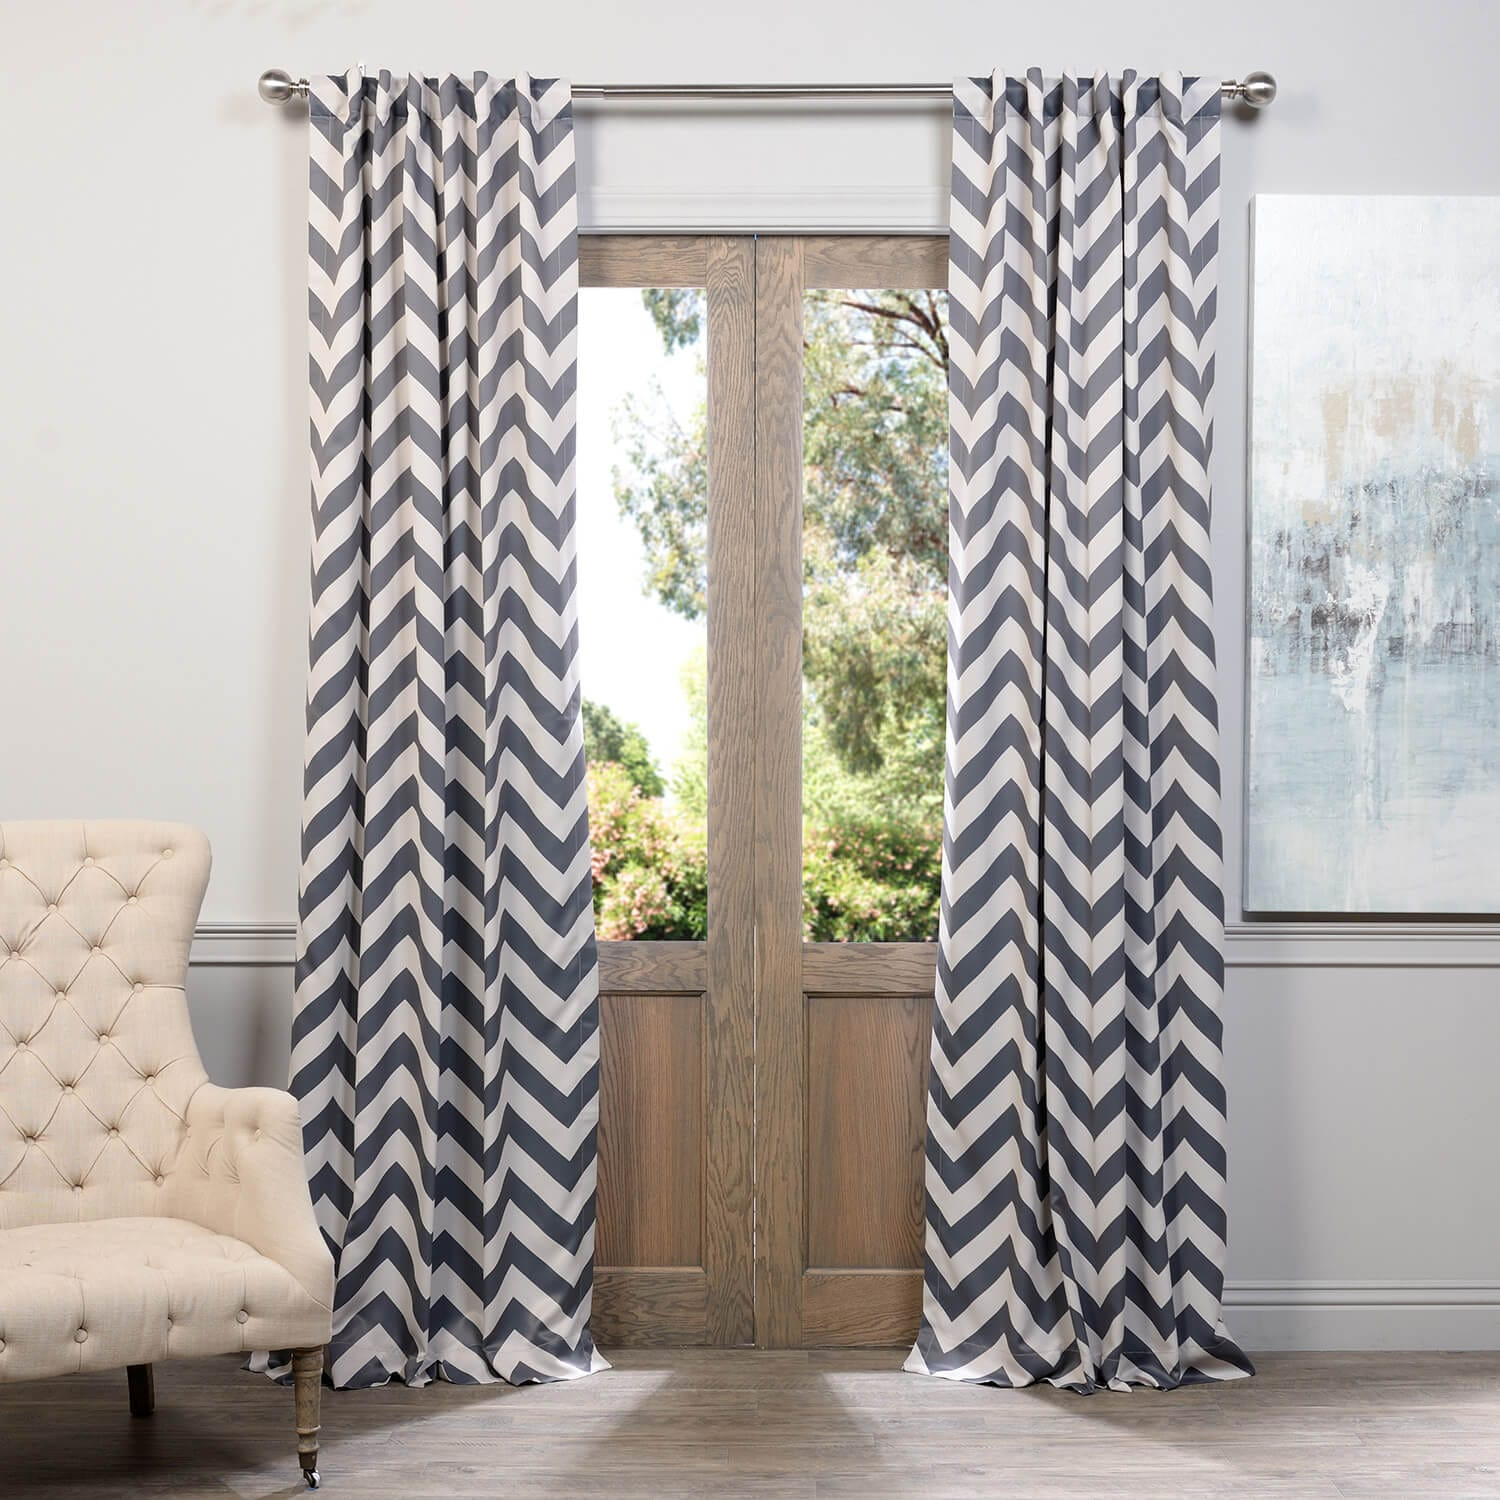 Fez Grey & Tan Blackout Room Darkening Curtain